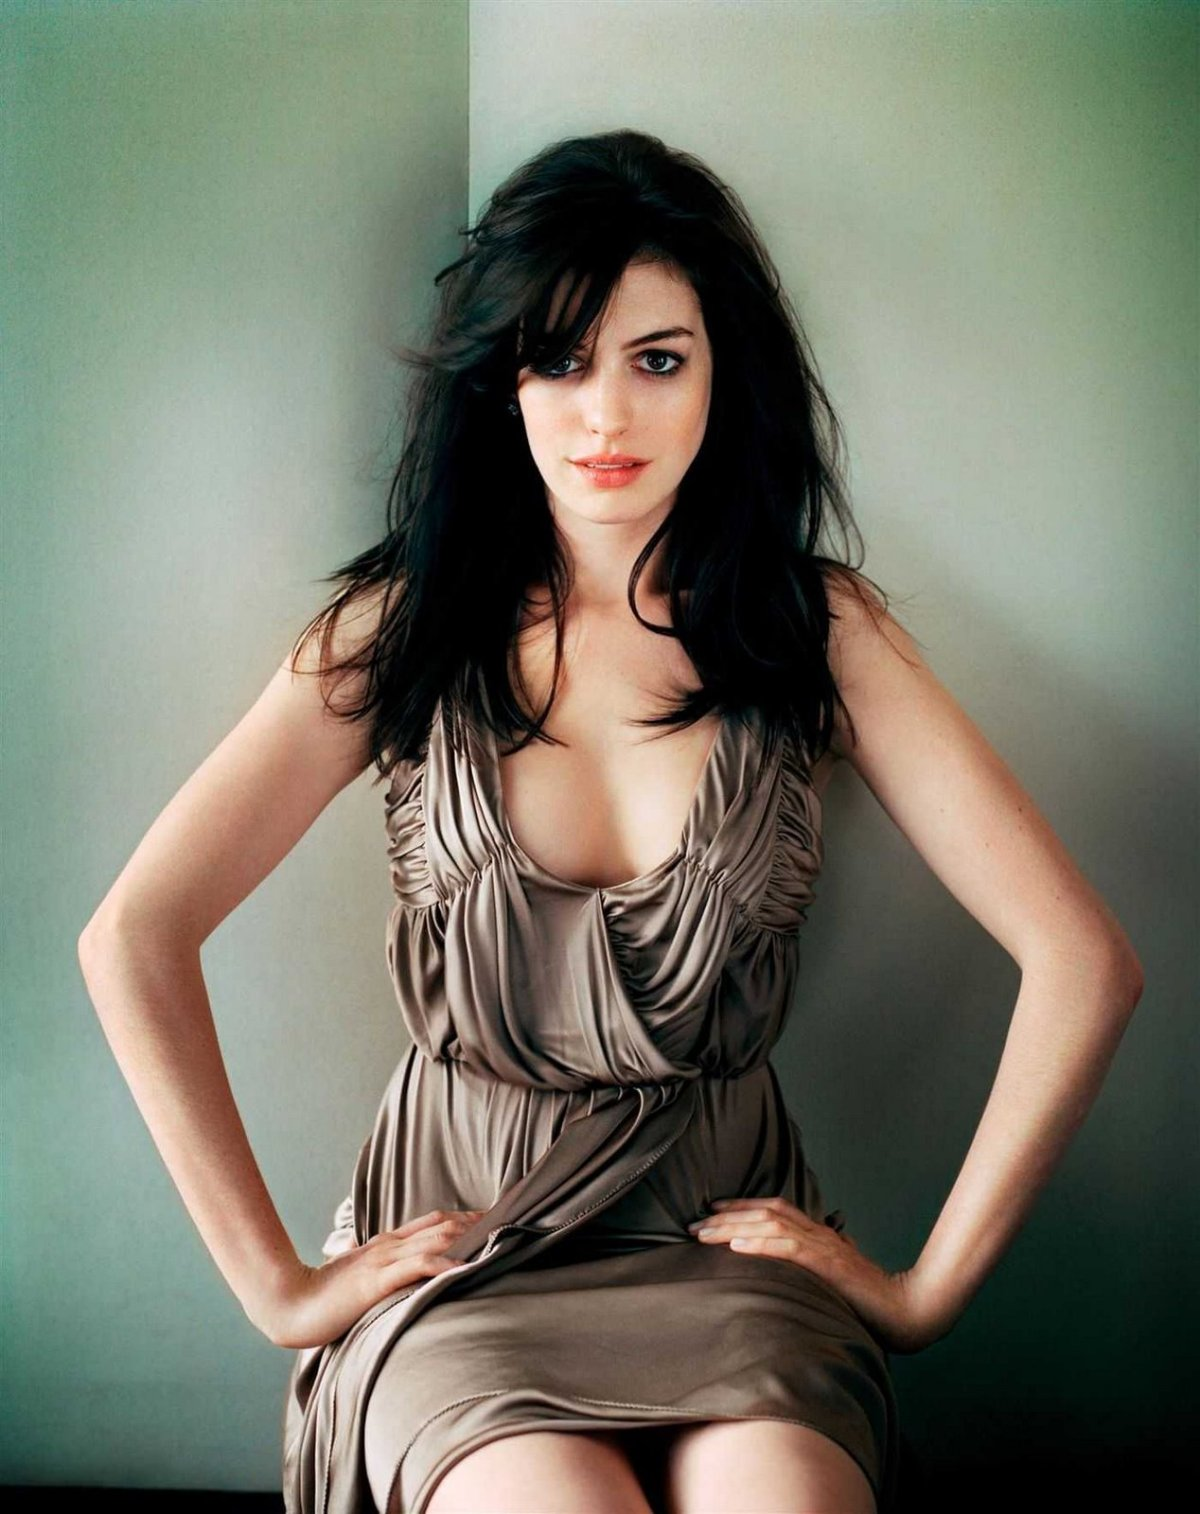 http://sweetcelebrity.files.wordpress.com/2008/06/hathaway-011.jpg?w=1200